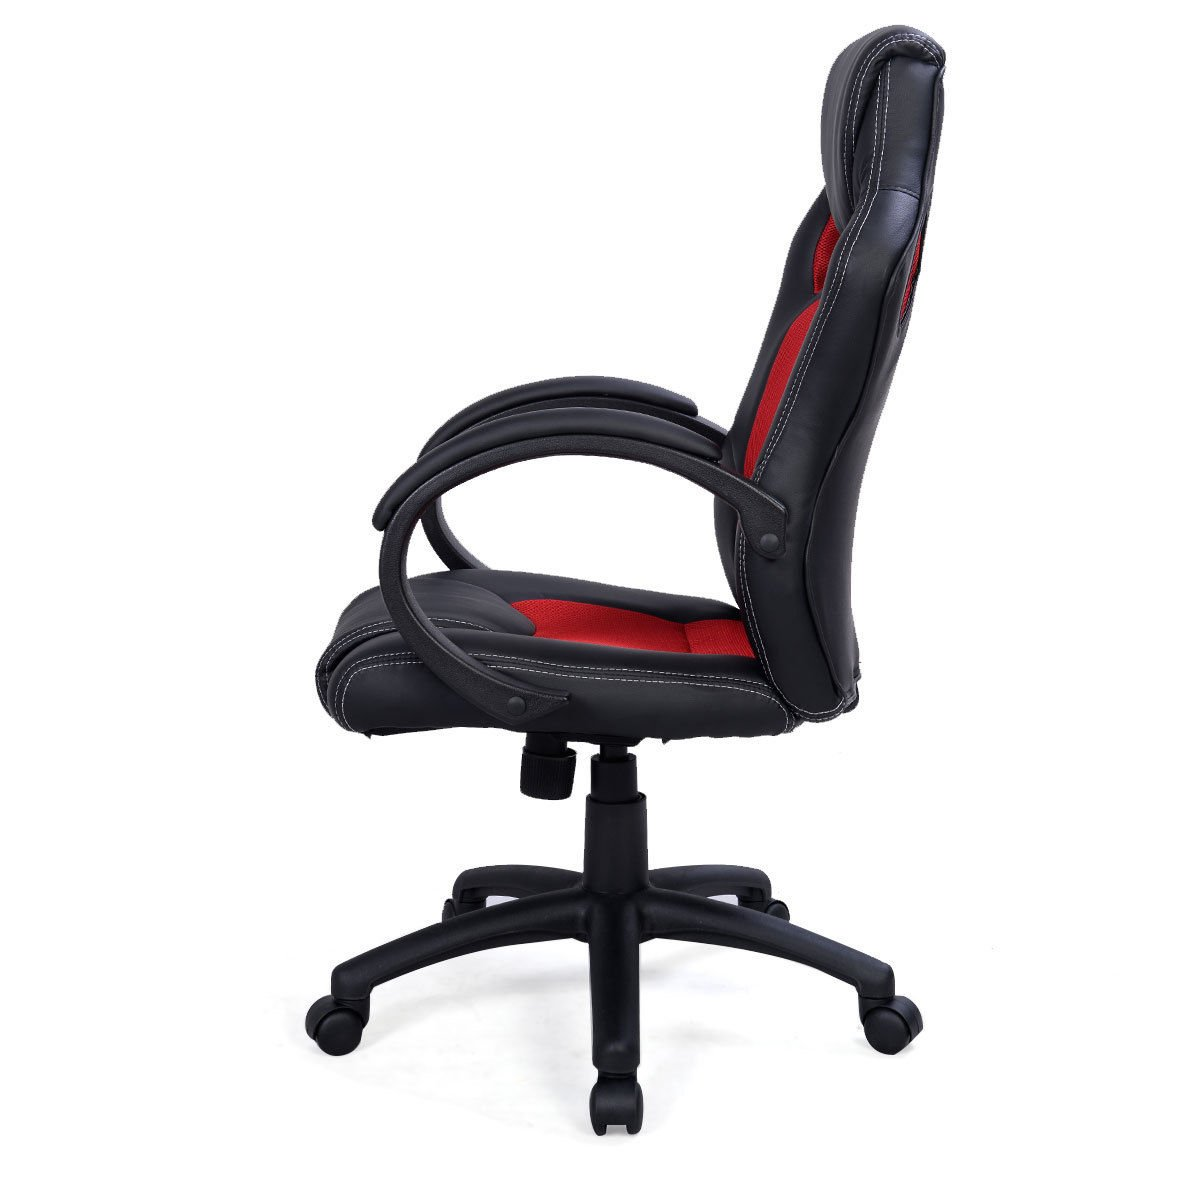 with remarkable black desk chairs armrests back wheels genuine executive high and adjustable tufted button design chair computer swivel office leather